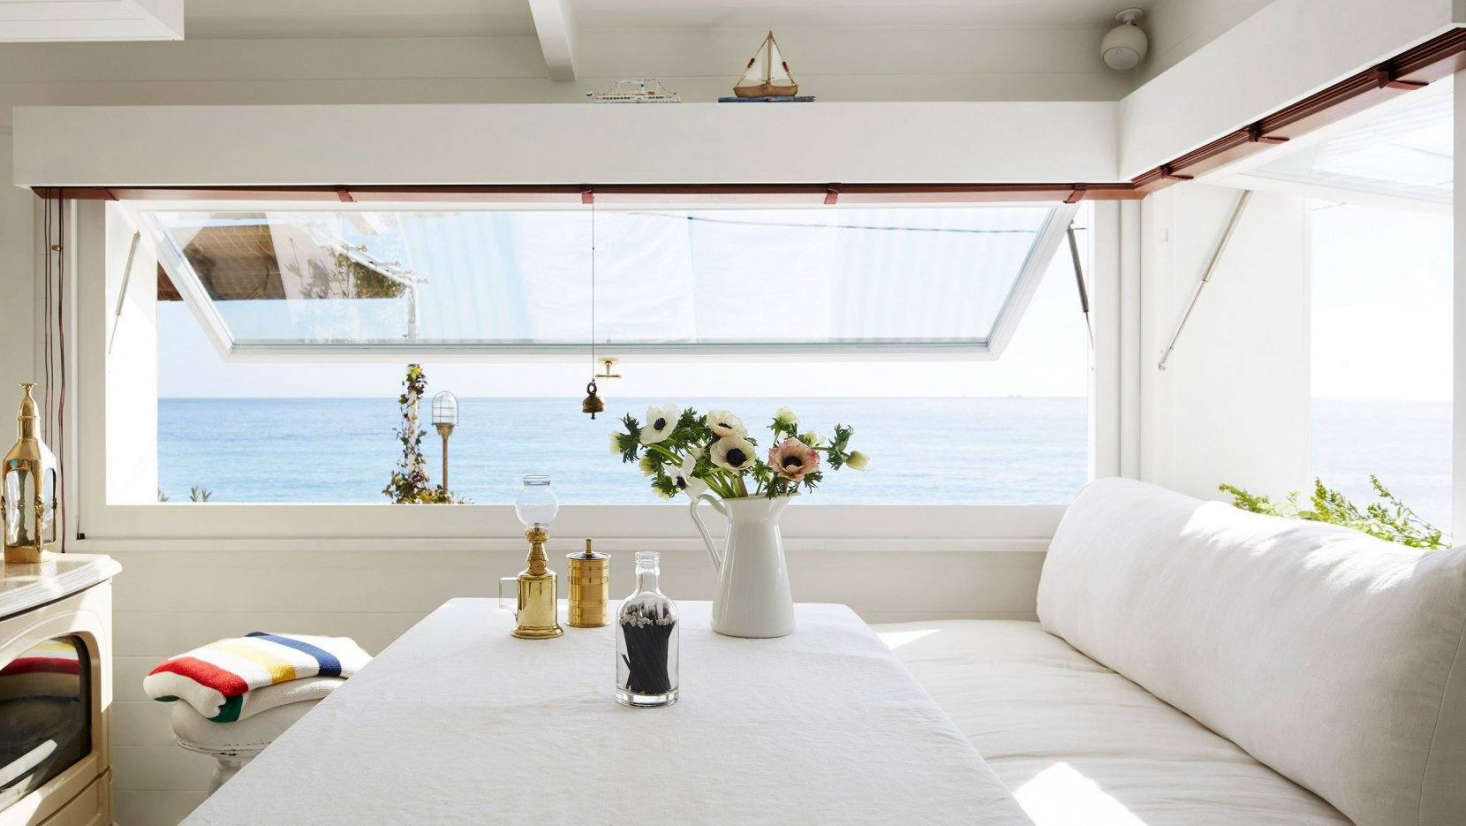 A Tiny (but Glamorous) Seaside Cabin on the Riviera